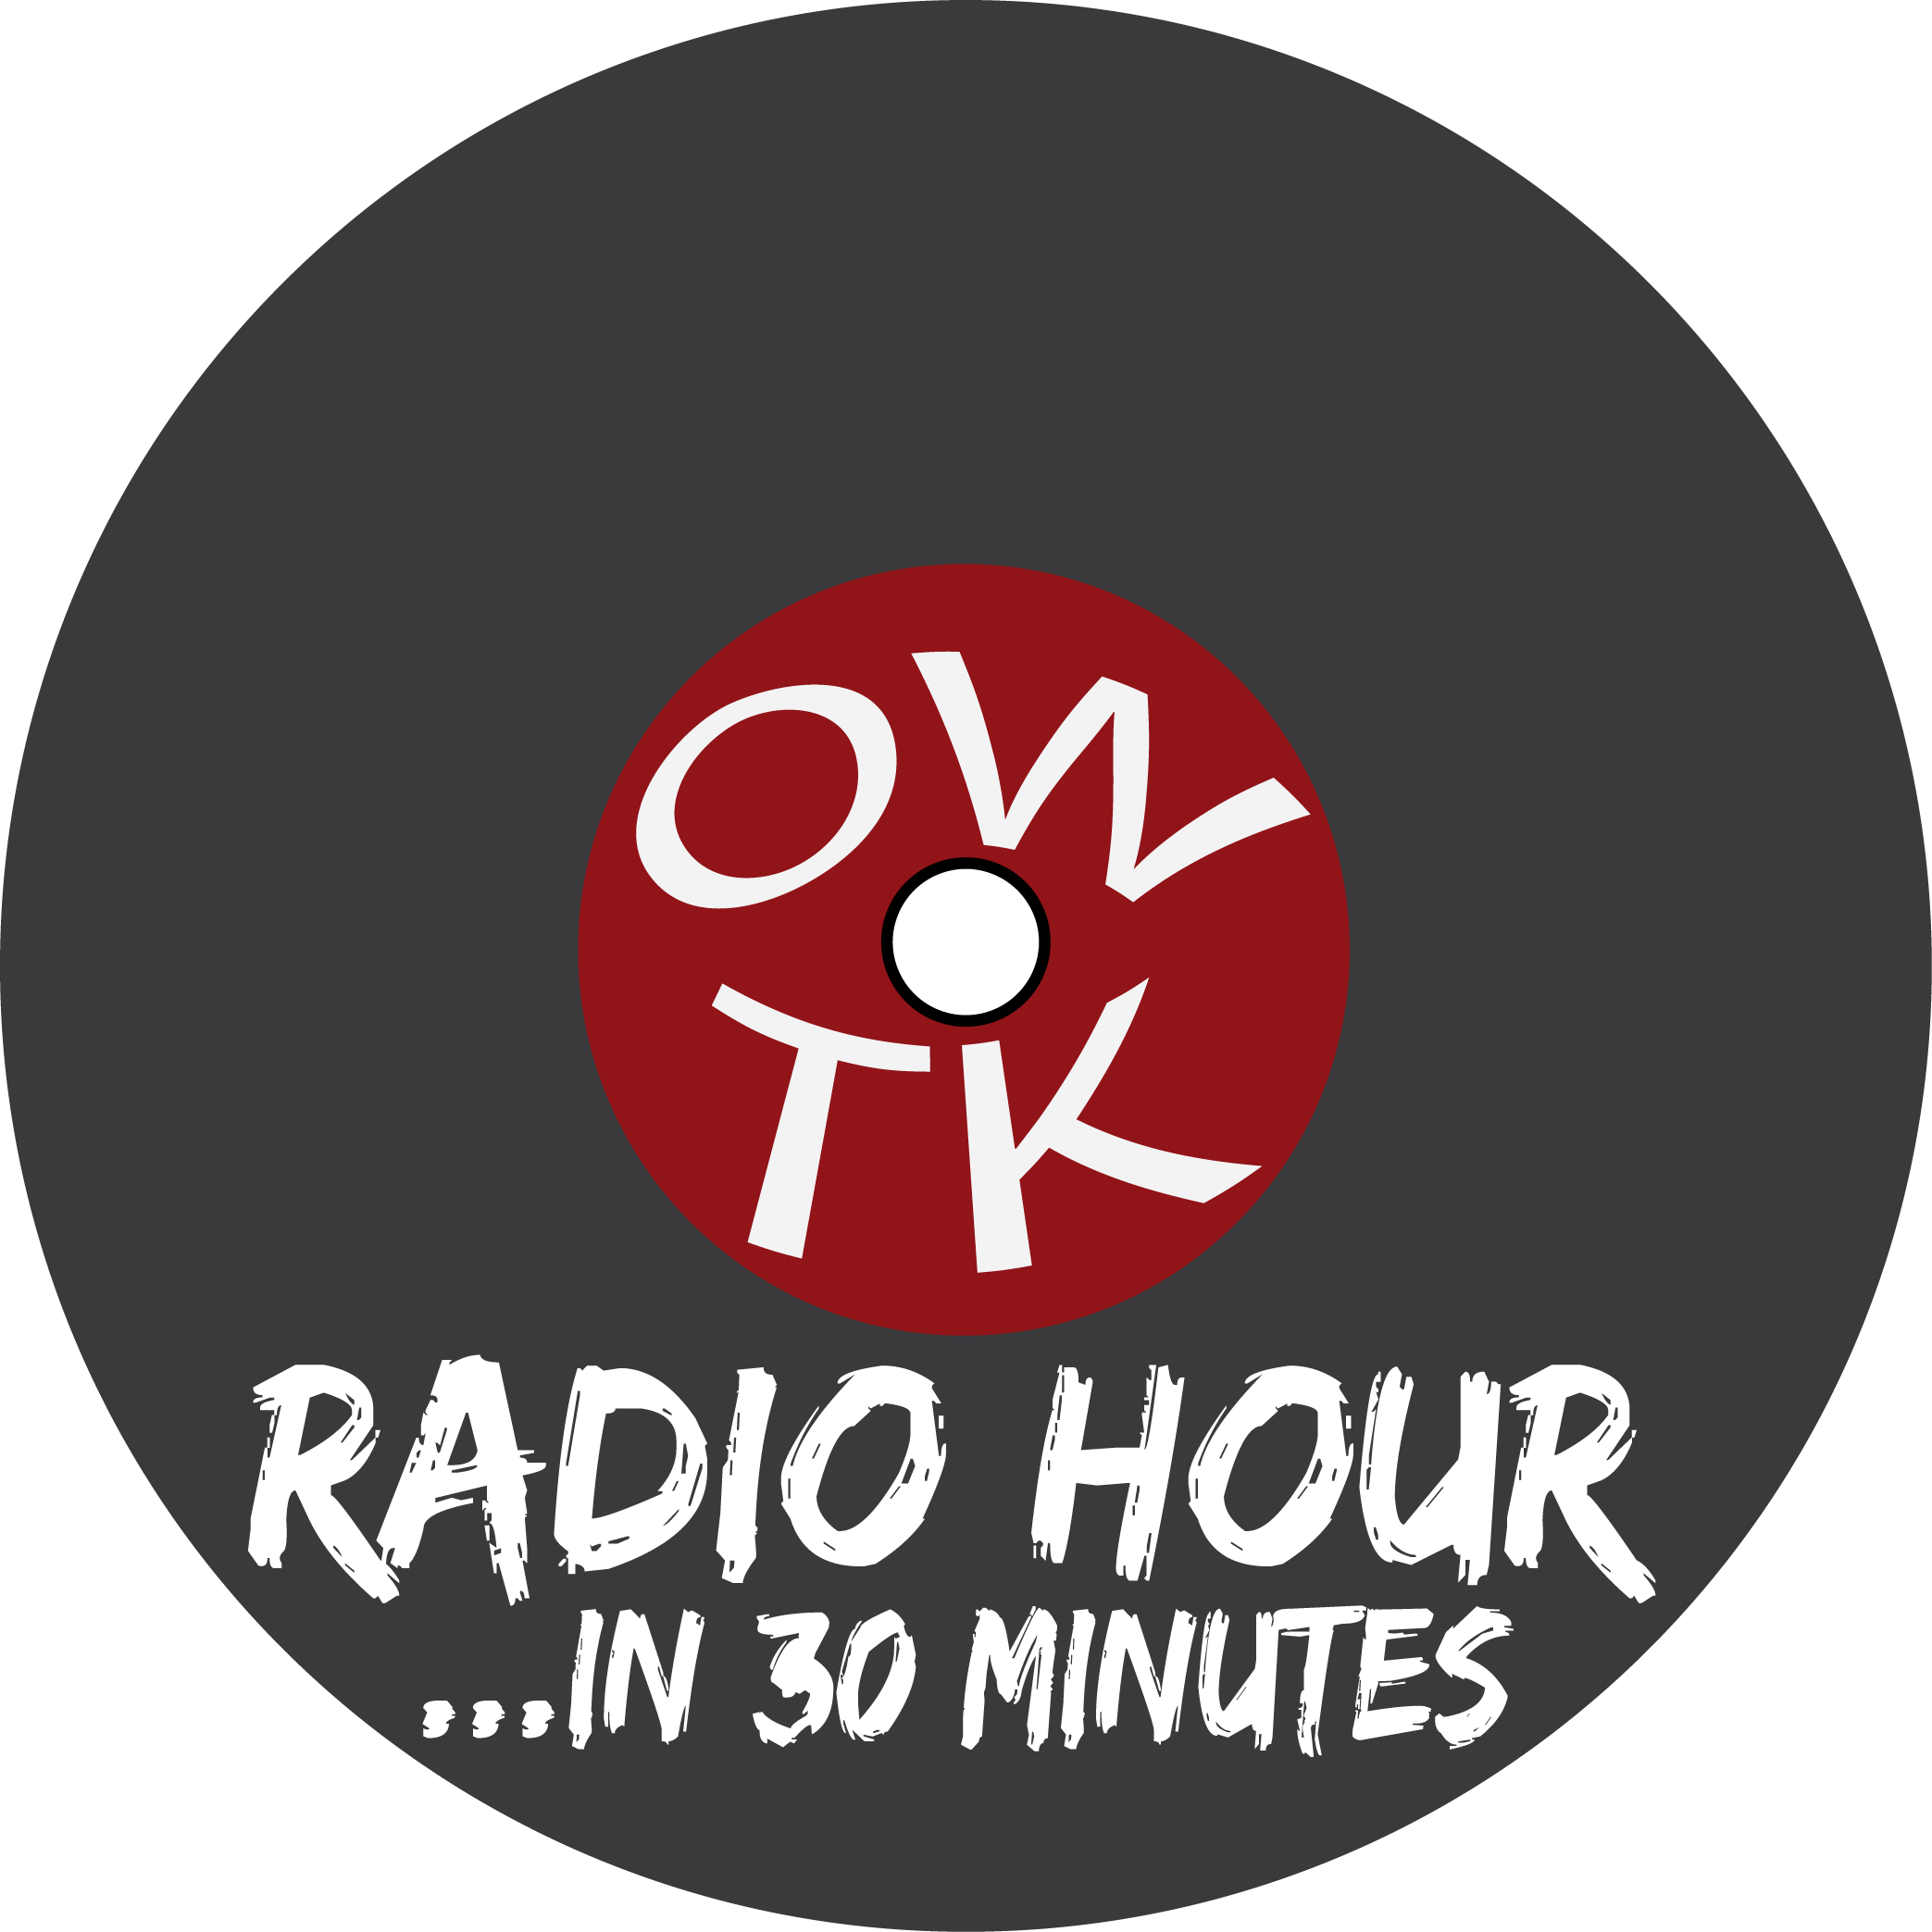 The OWTK Radio Hour...in 30 Minutes - Episode #1